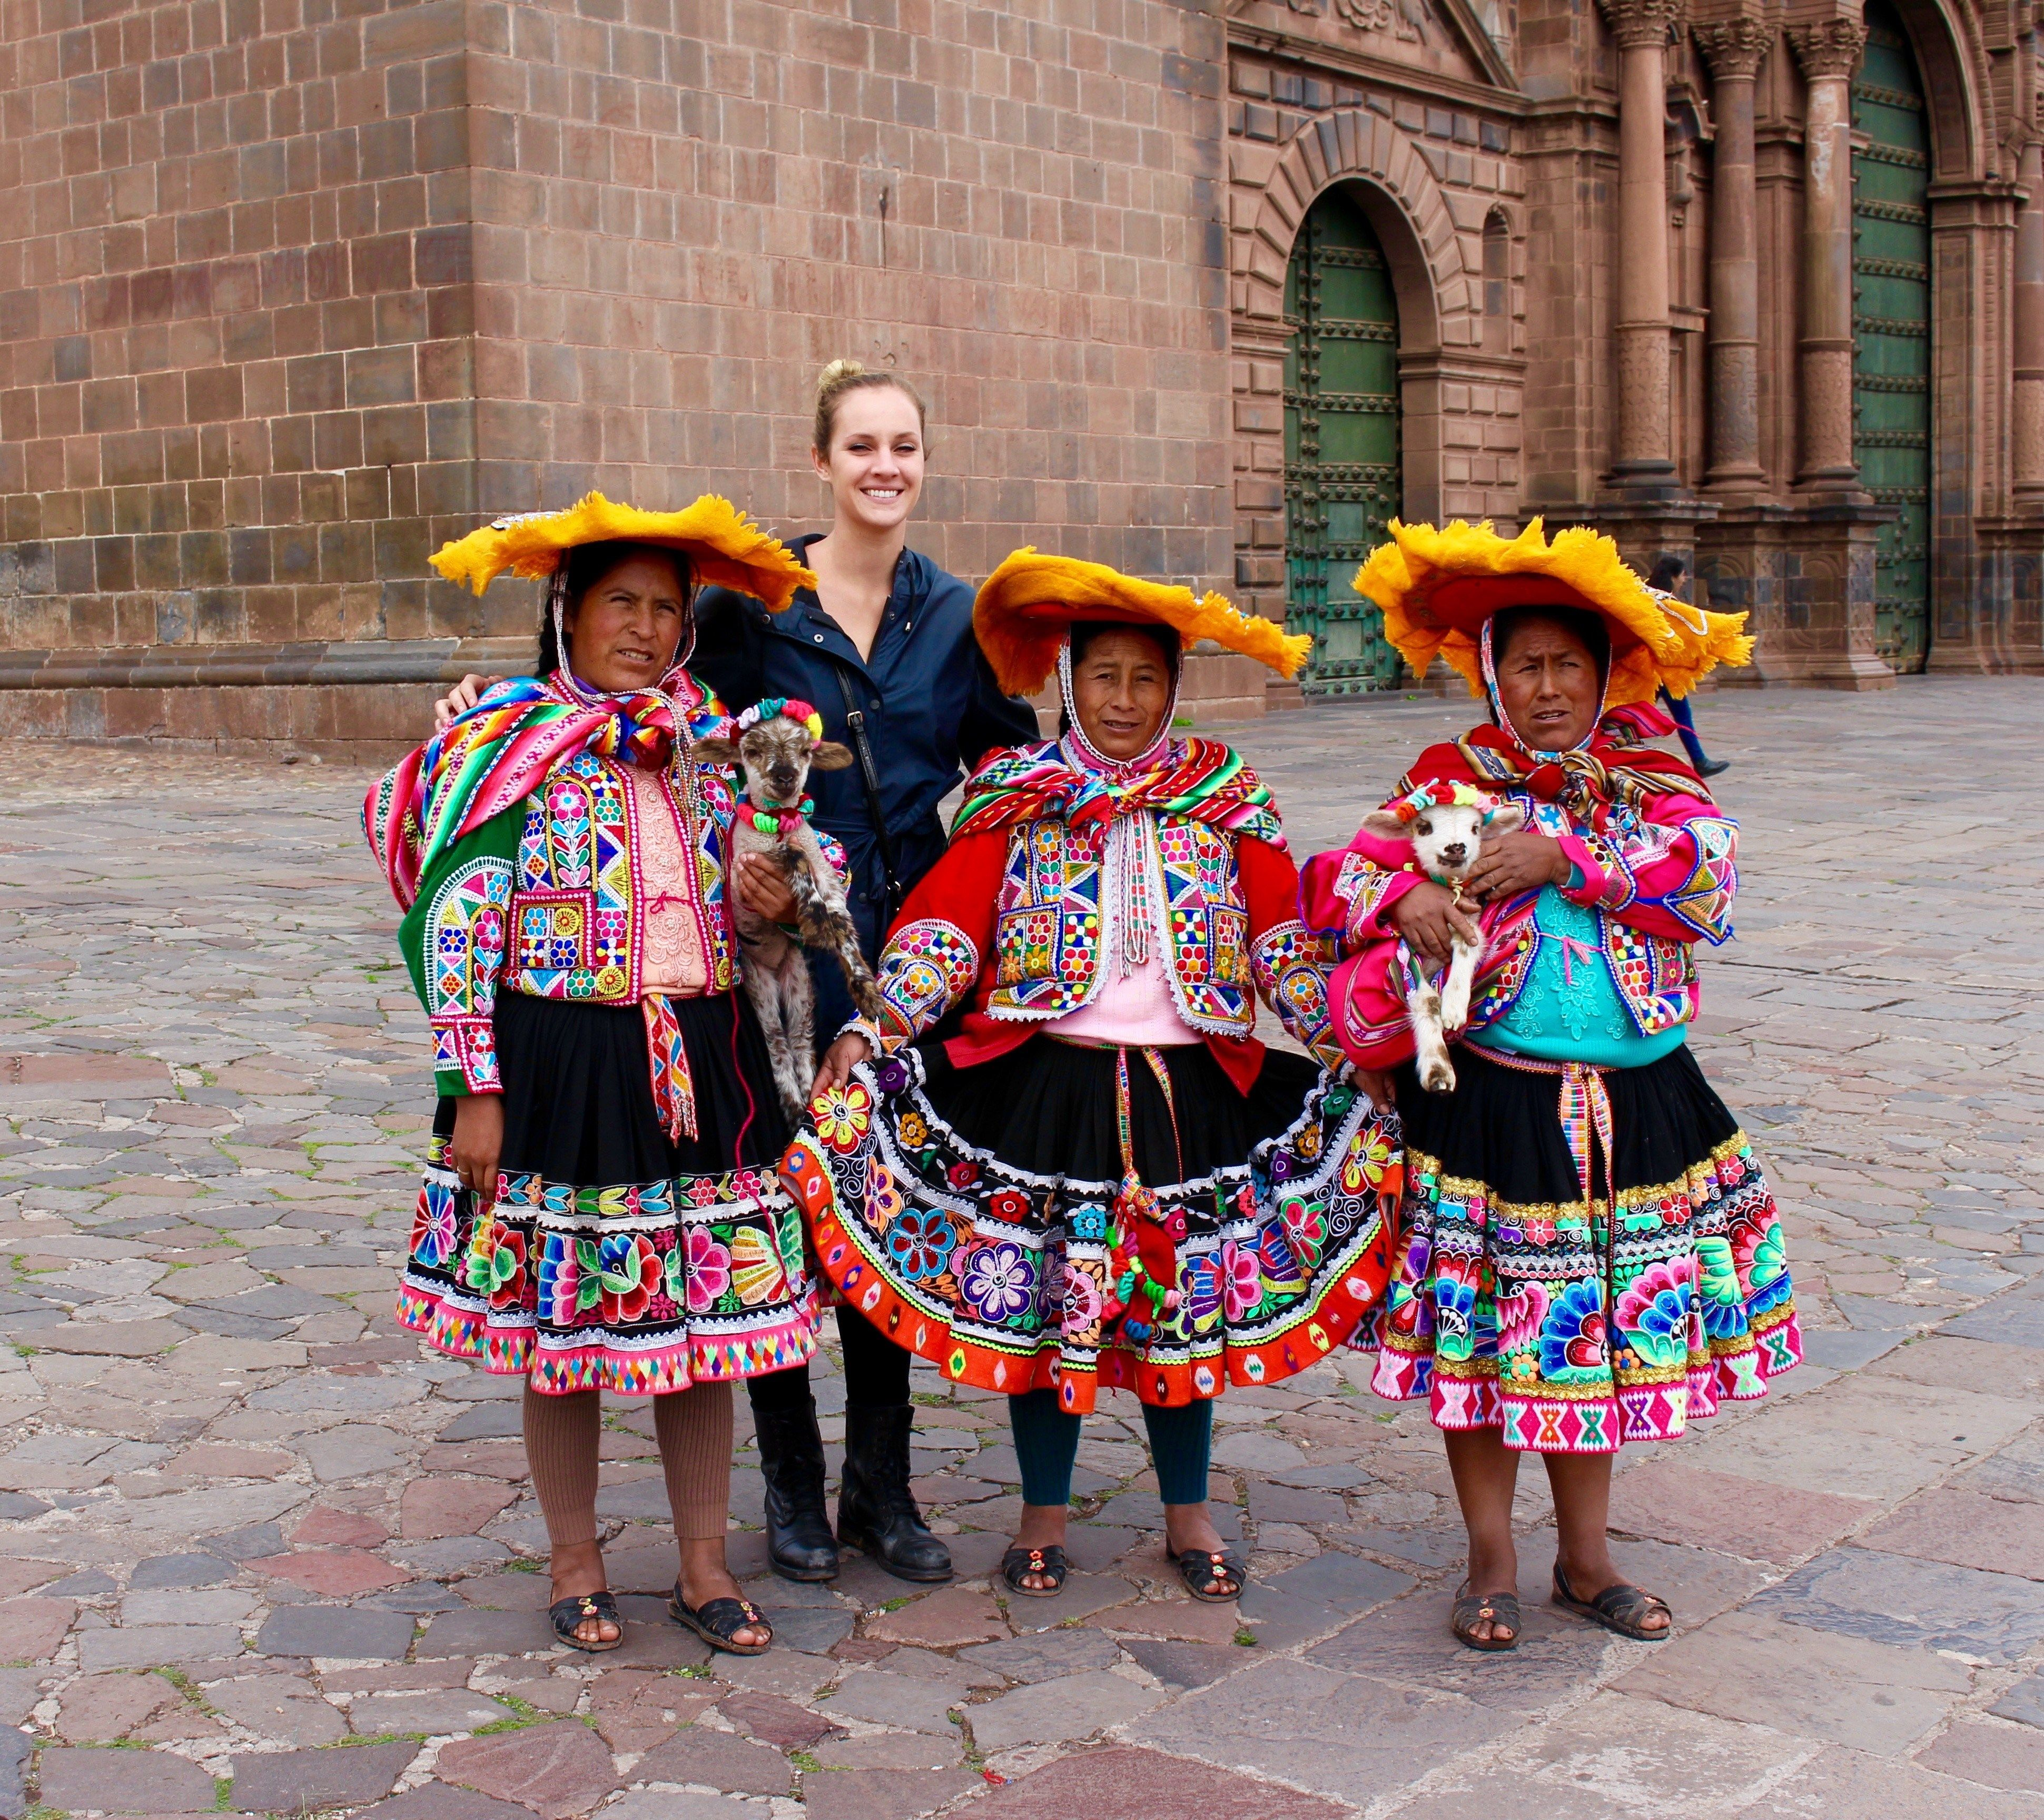 Three Days In Cusco Peru Itinerary Everything You Need